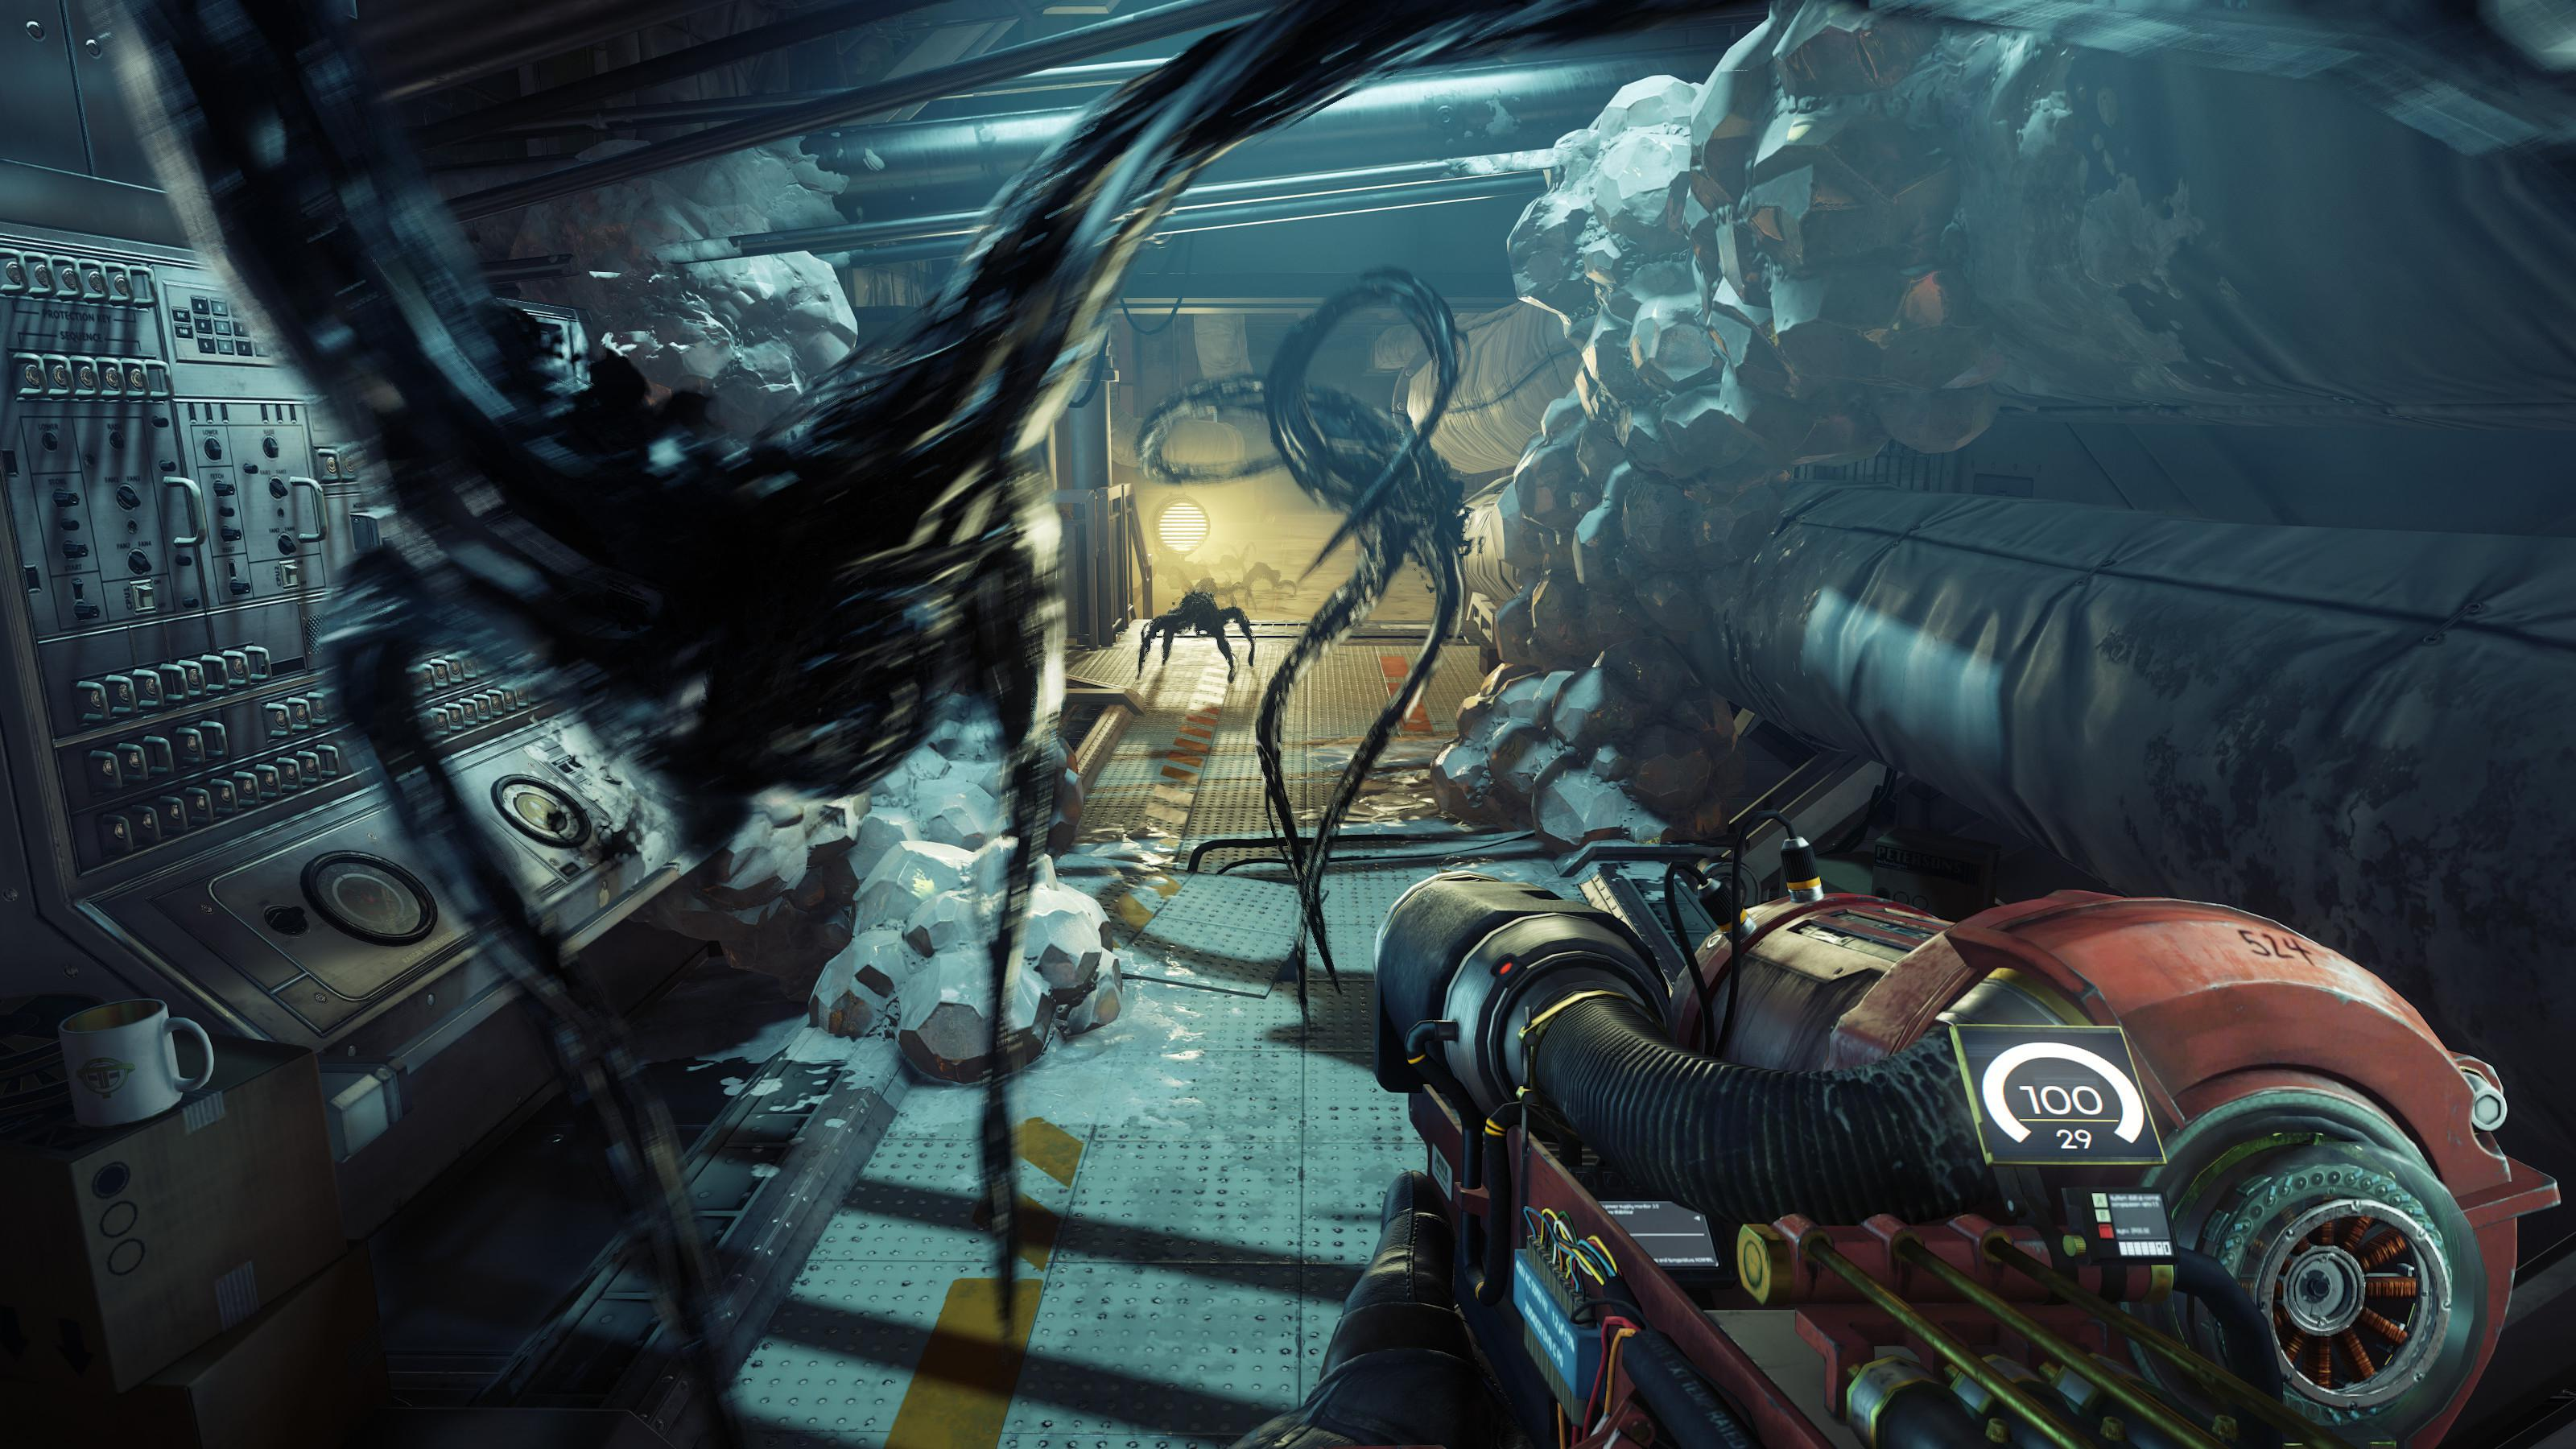 Prey's visuals are powered by CryEngine – the same powerhouse behind the gorgeous Crysis 2 and 3